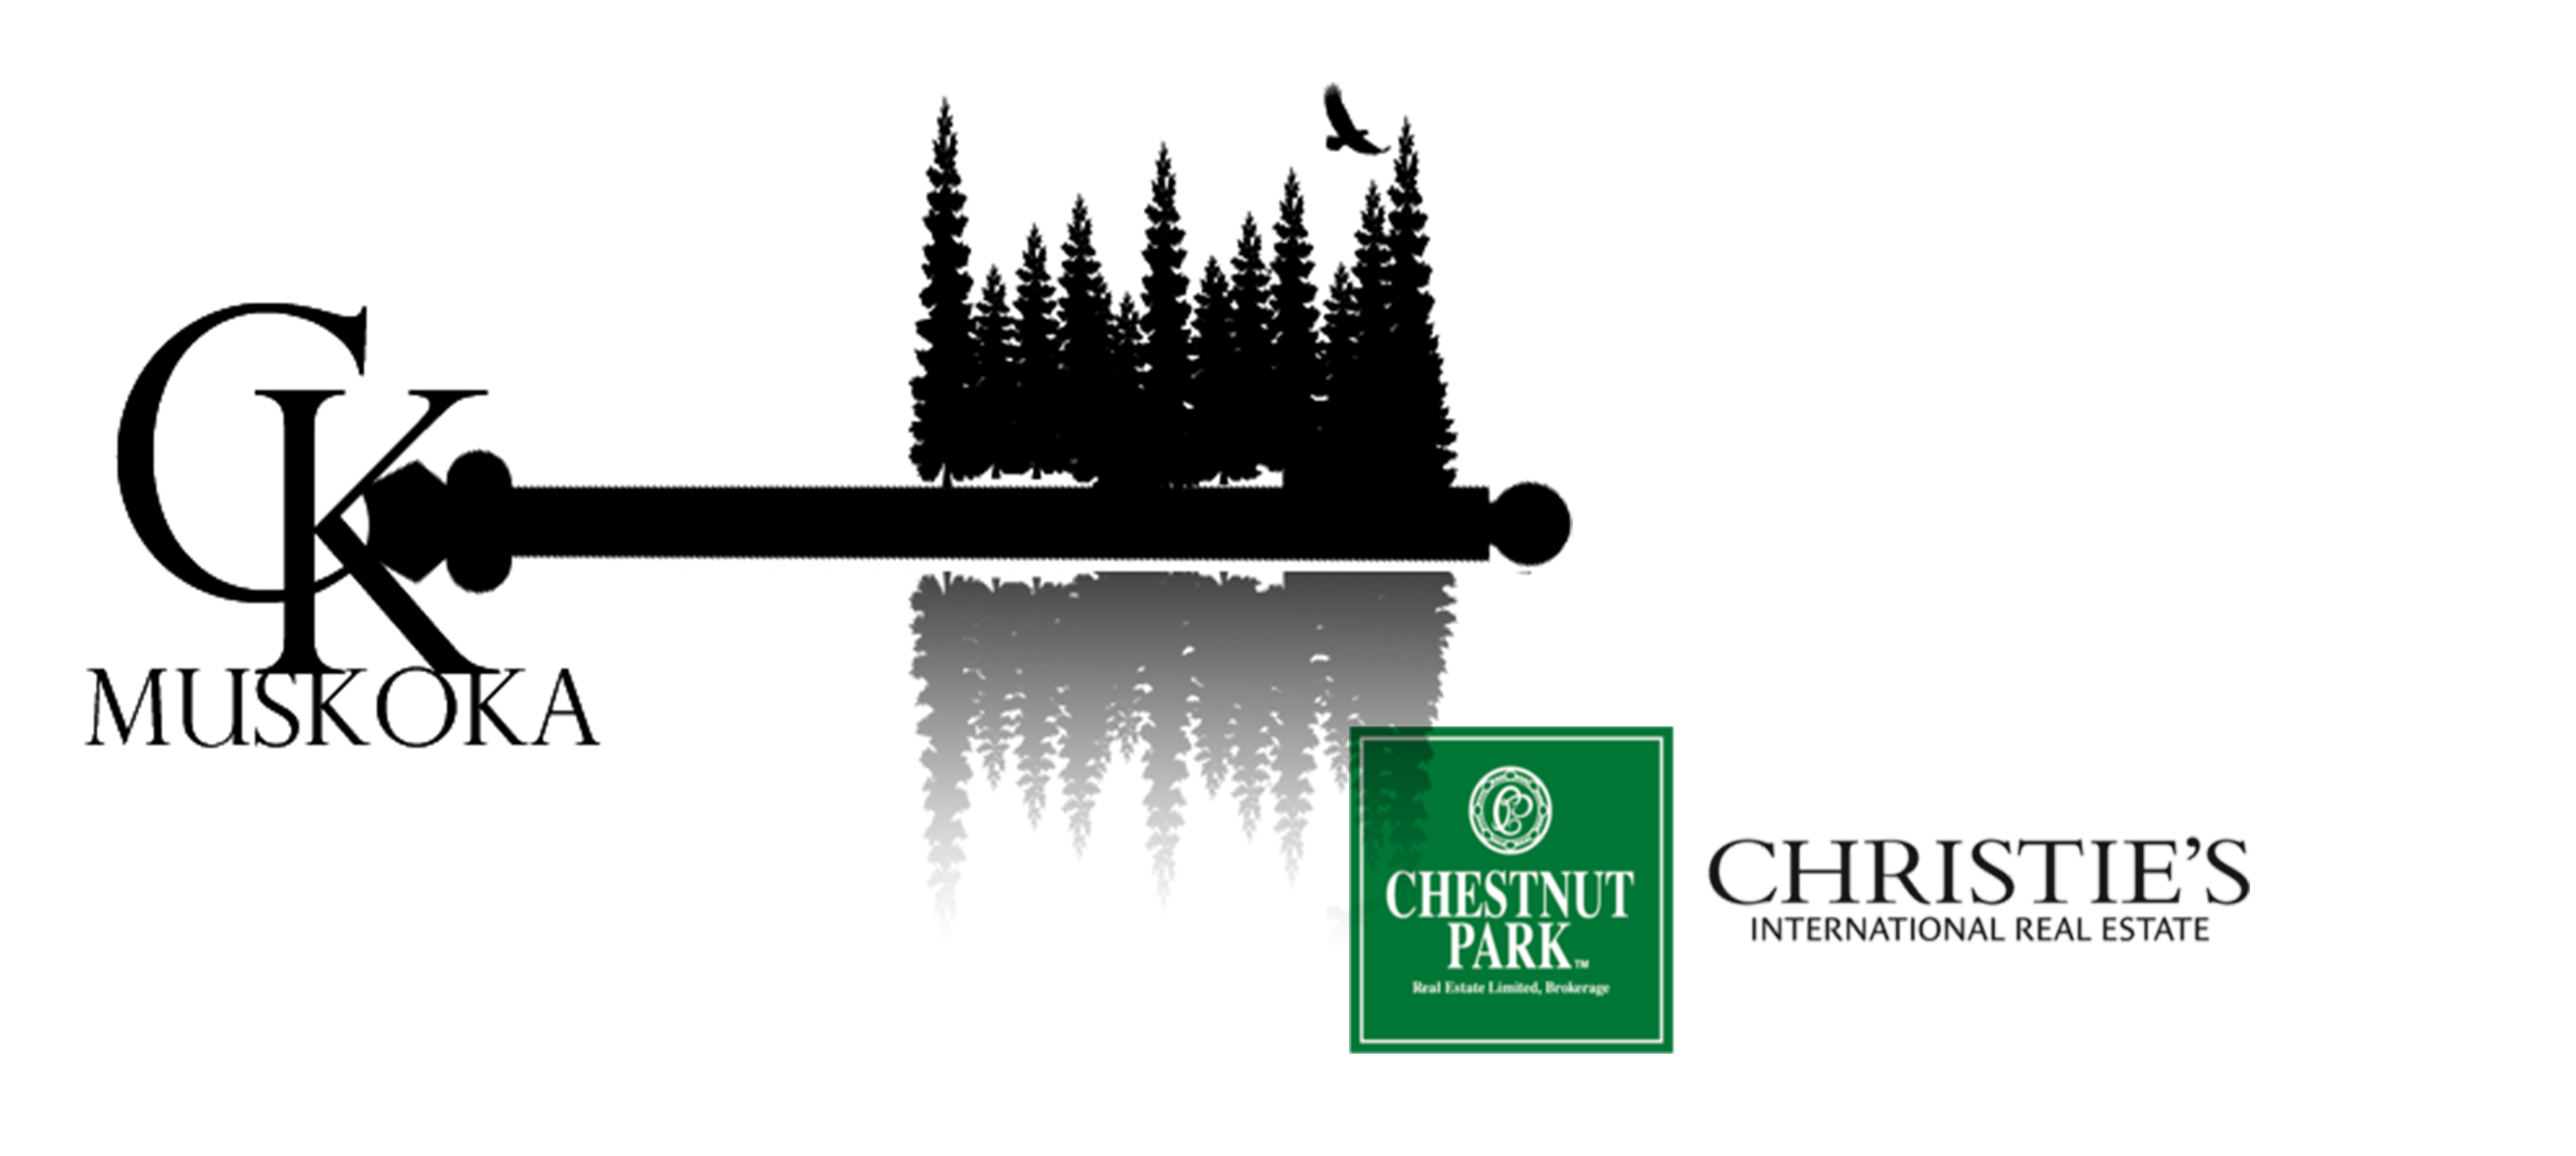 Logo with chestnut